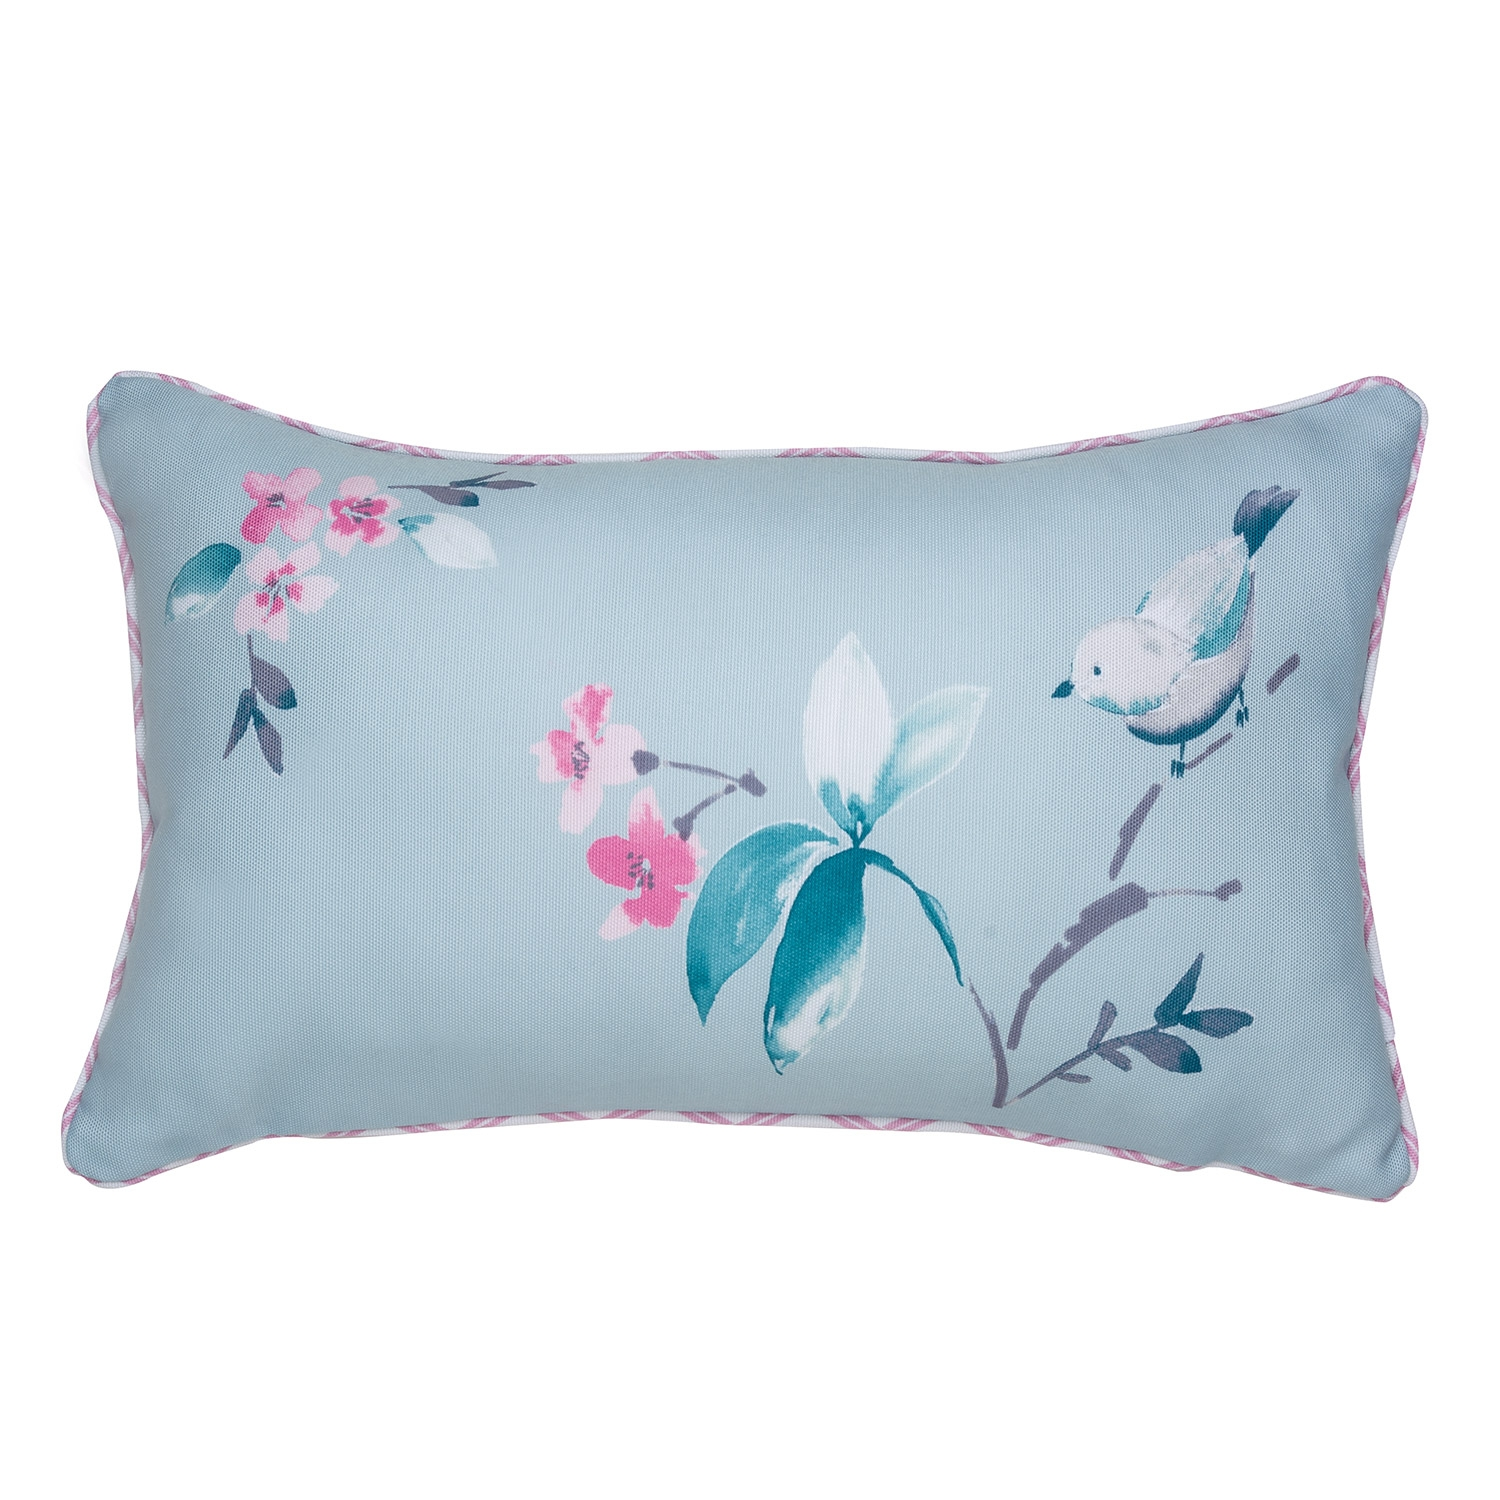 Amelie Teal Filled Boudoir Cushion